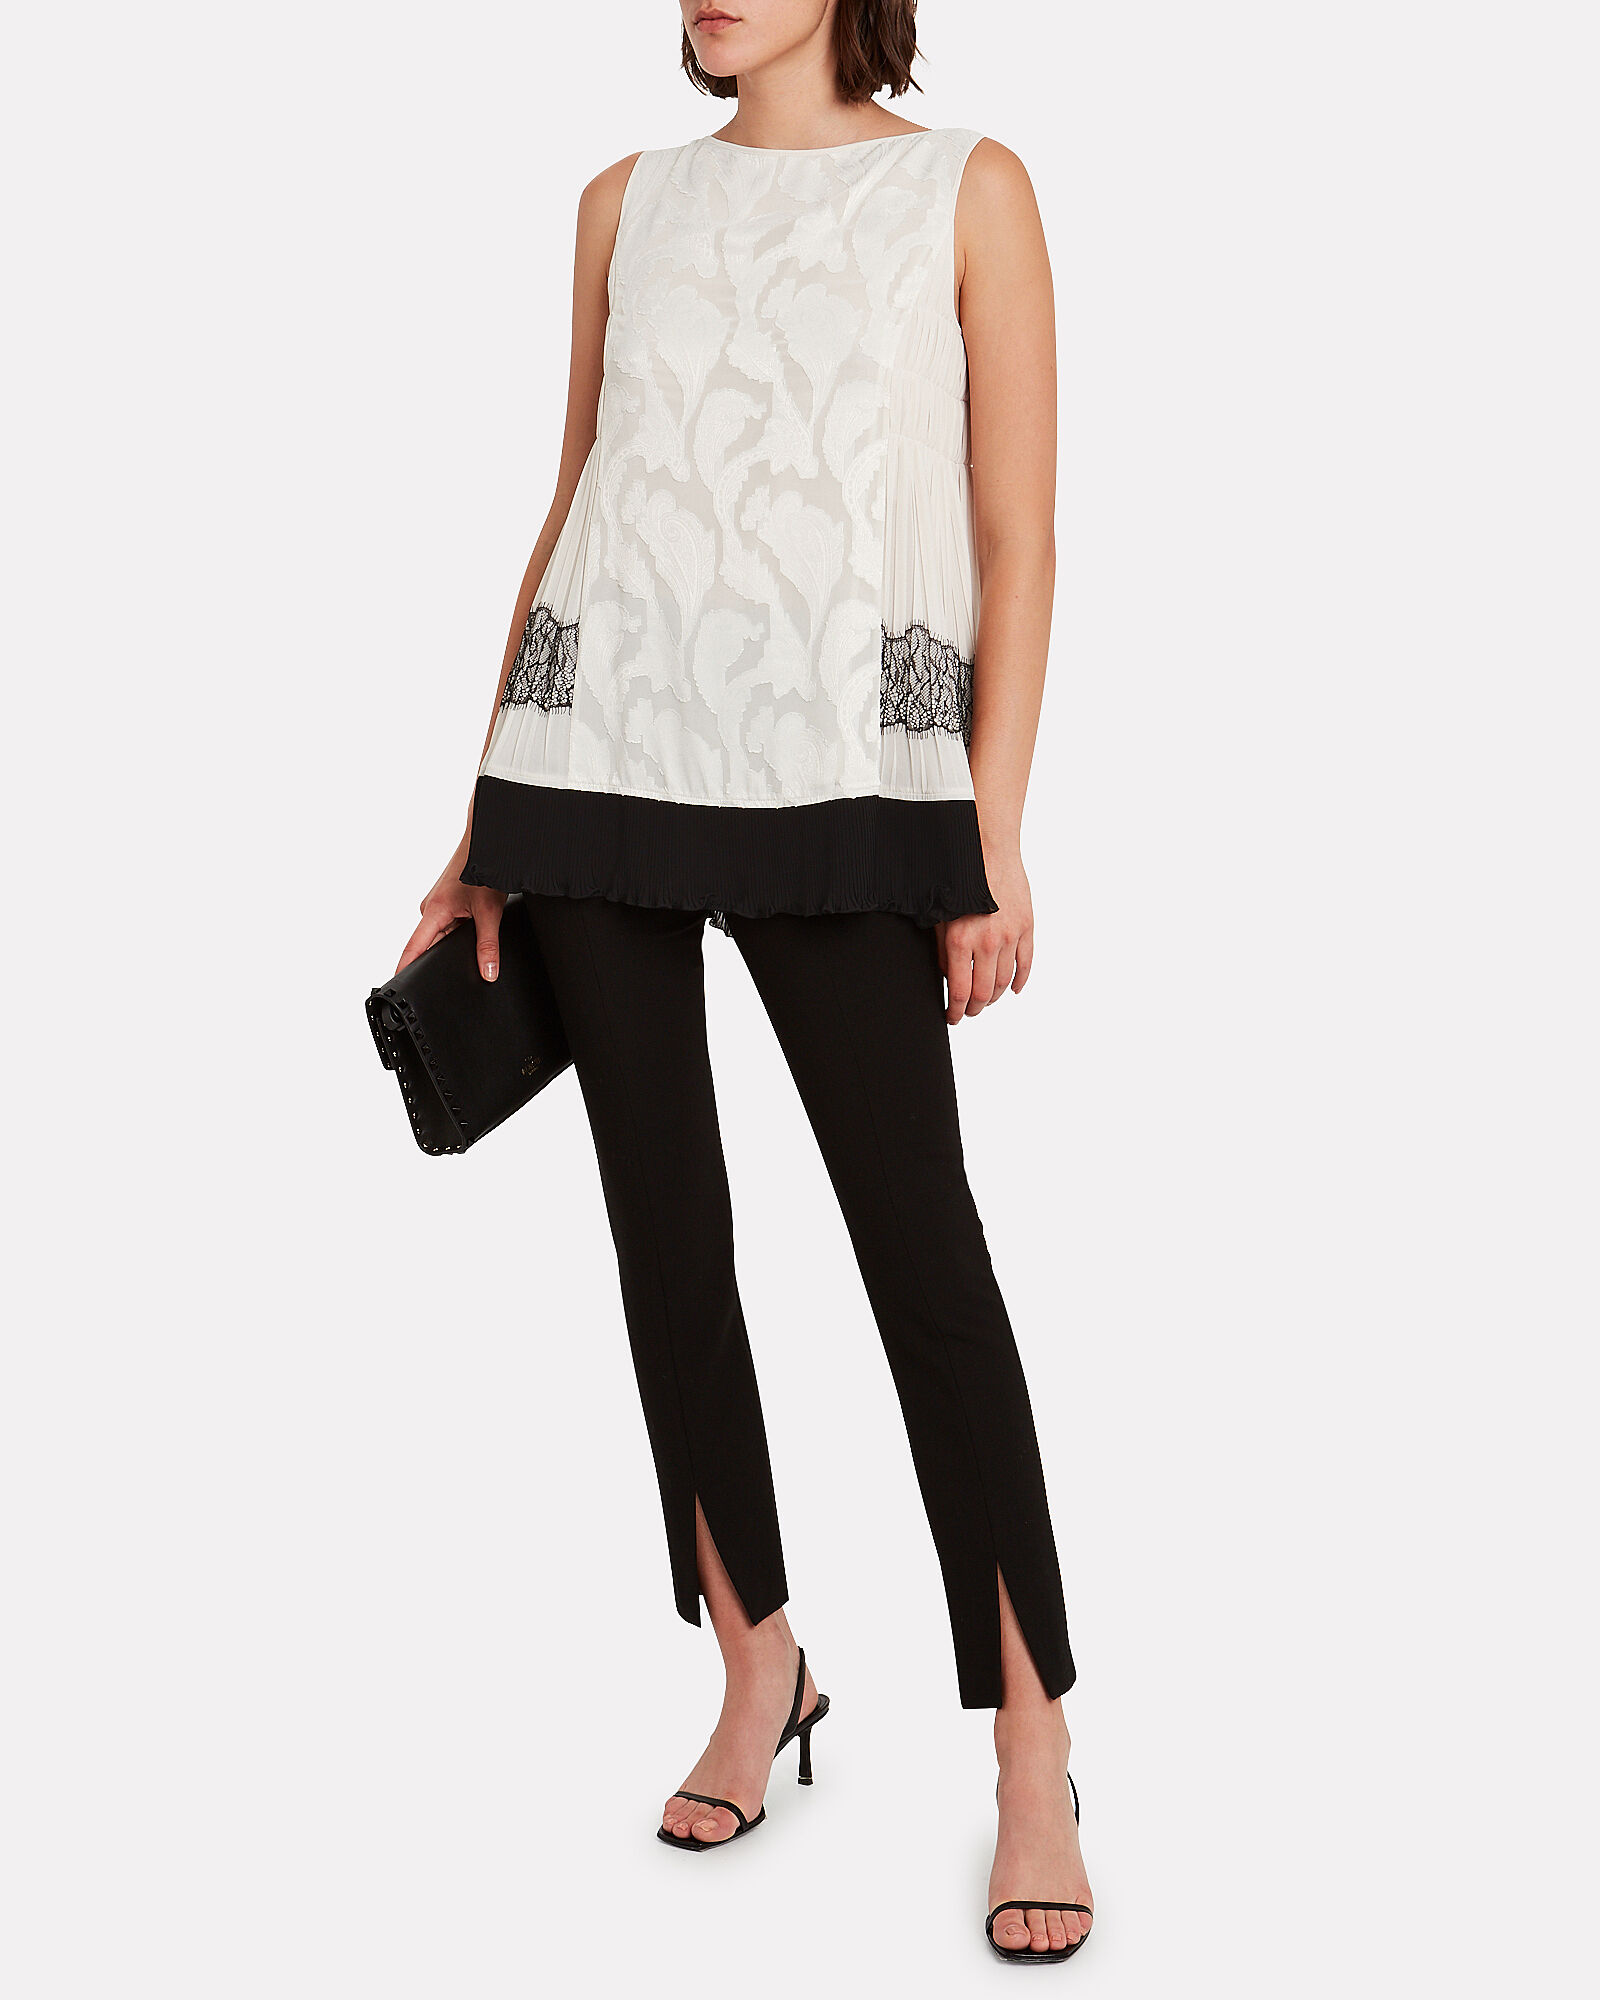 Lace-Trimmed Satin Top, IVORY, hi-res